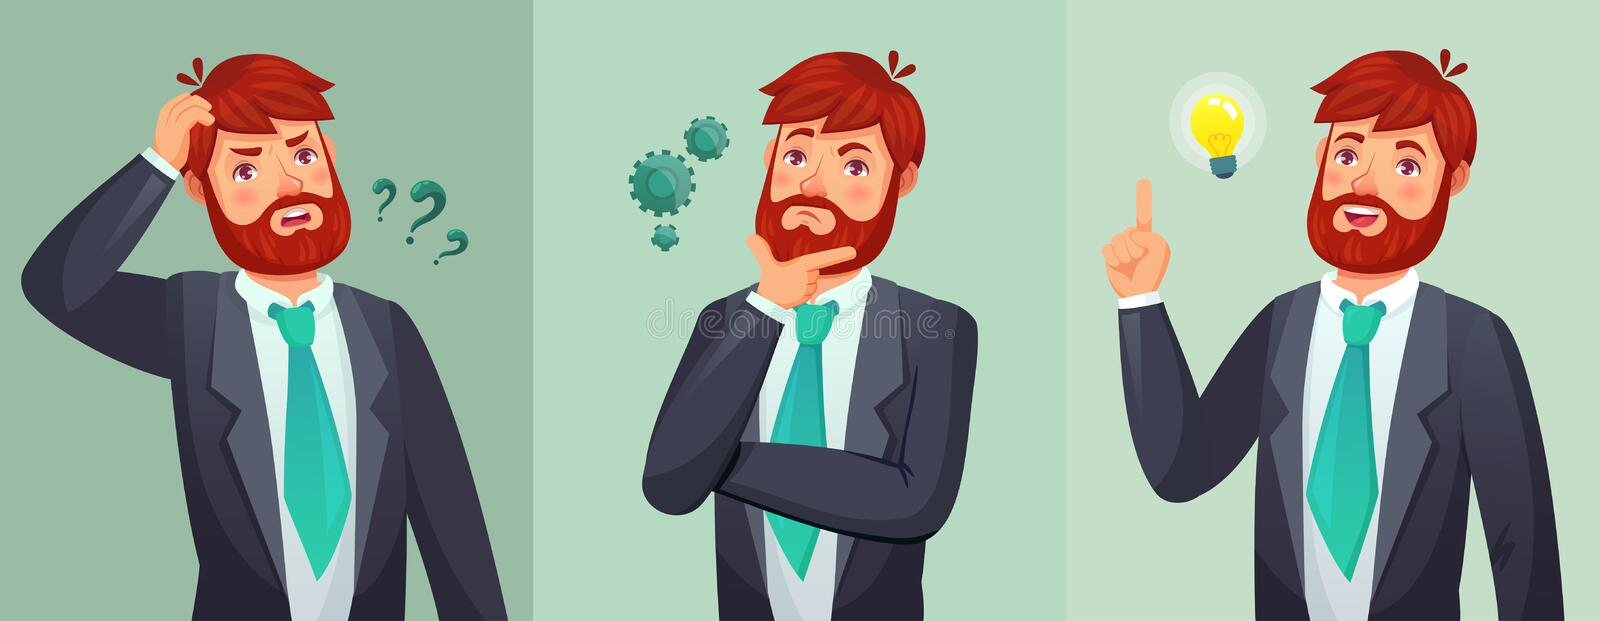 Thoughtful man. Male ask questions, doubt or confused and found question answer. Thinking serious decision cartoon royalty free illustration